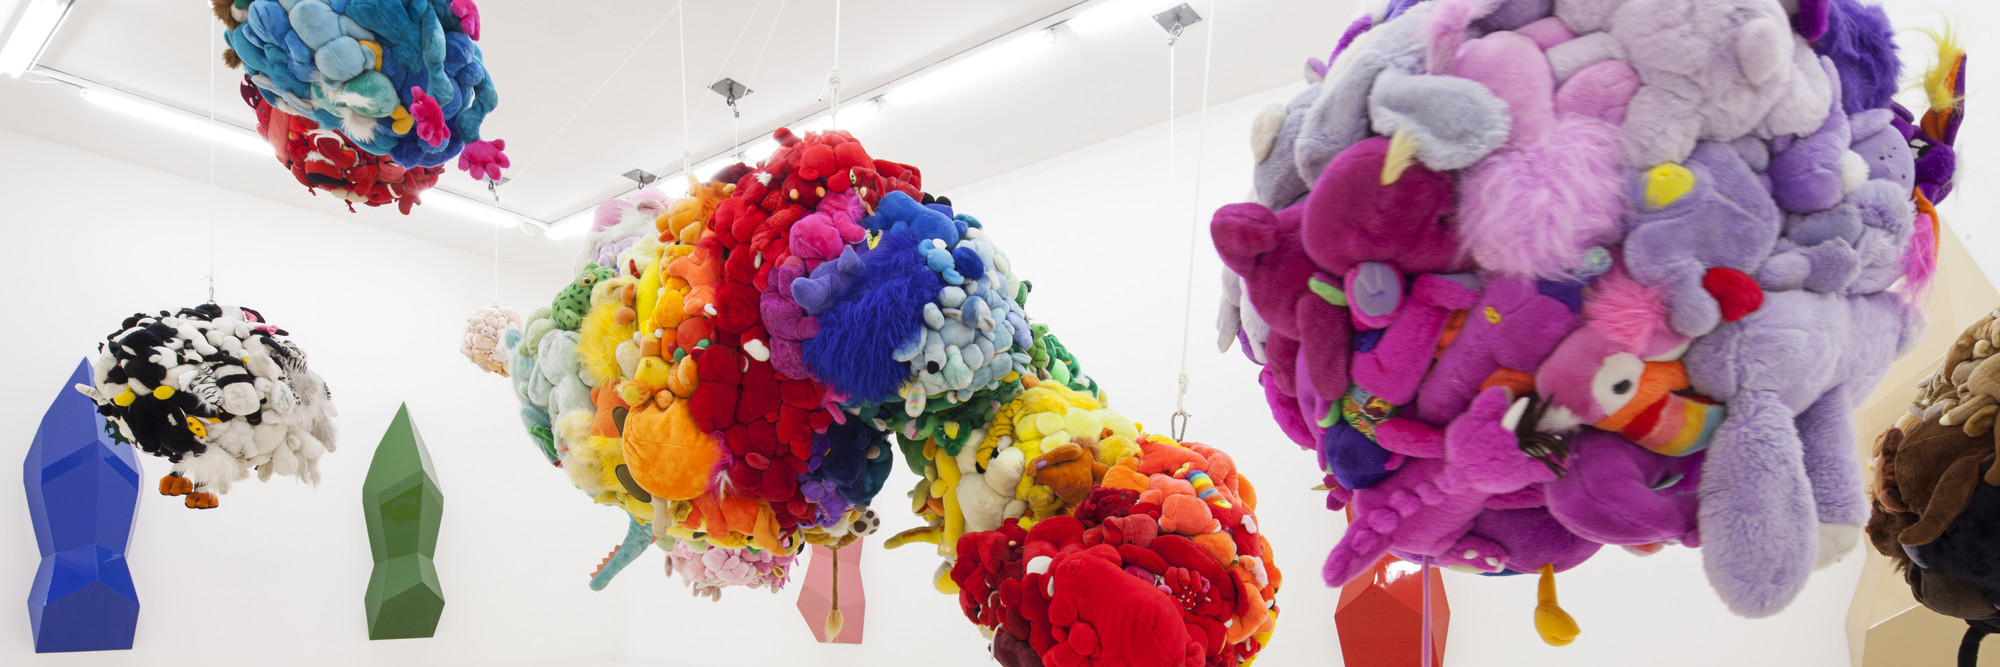 Installation view, Mike Kelley at MoMA PS1, October 13, 2013–February 2, 2014. Photo: Matthew Septimus